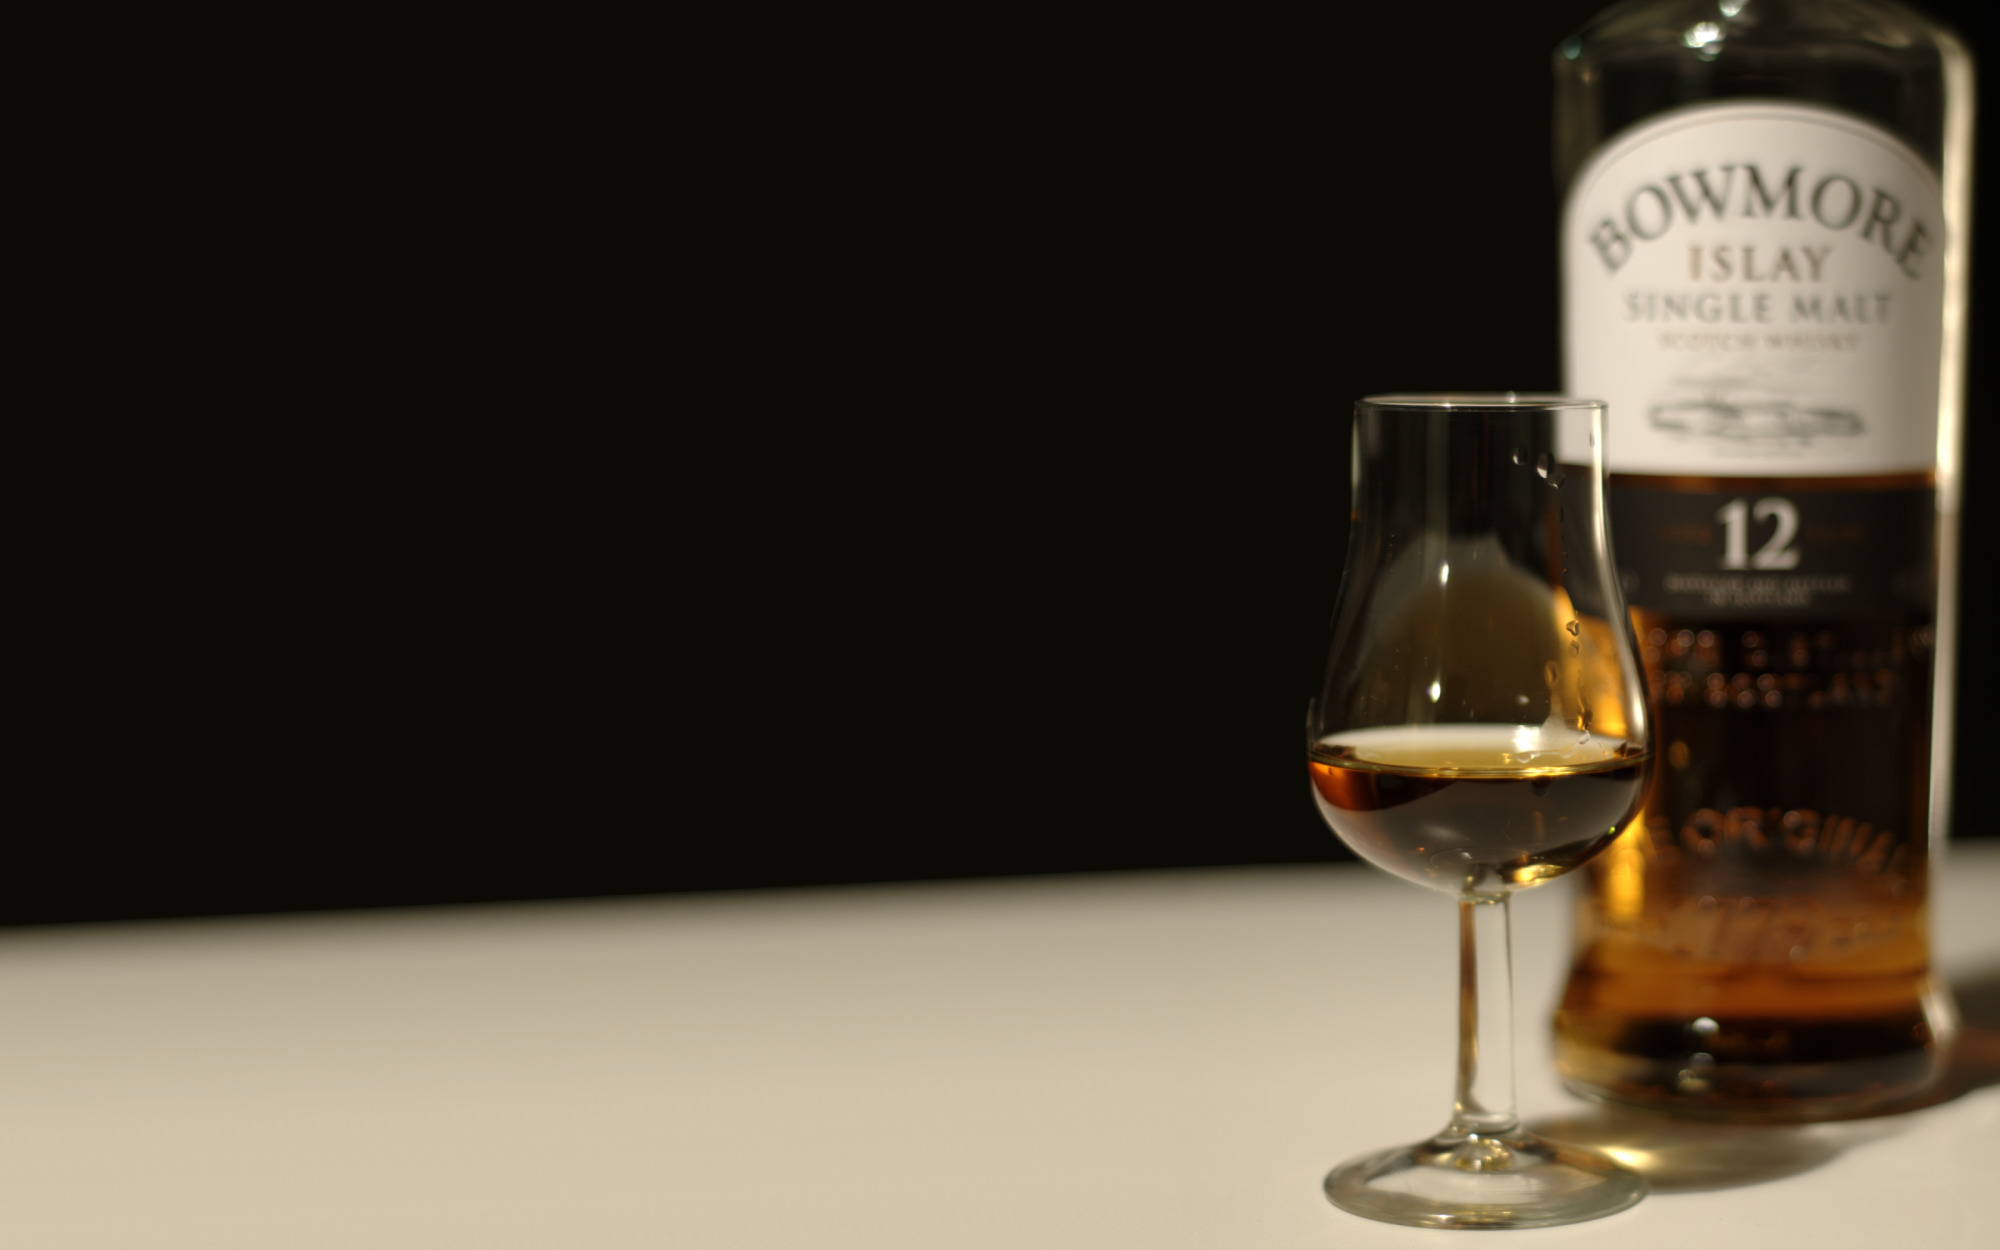 whiskey tobacco liquor Scotch HD Wallpaper